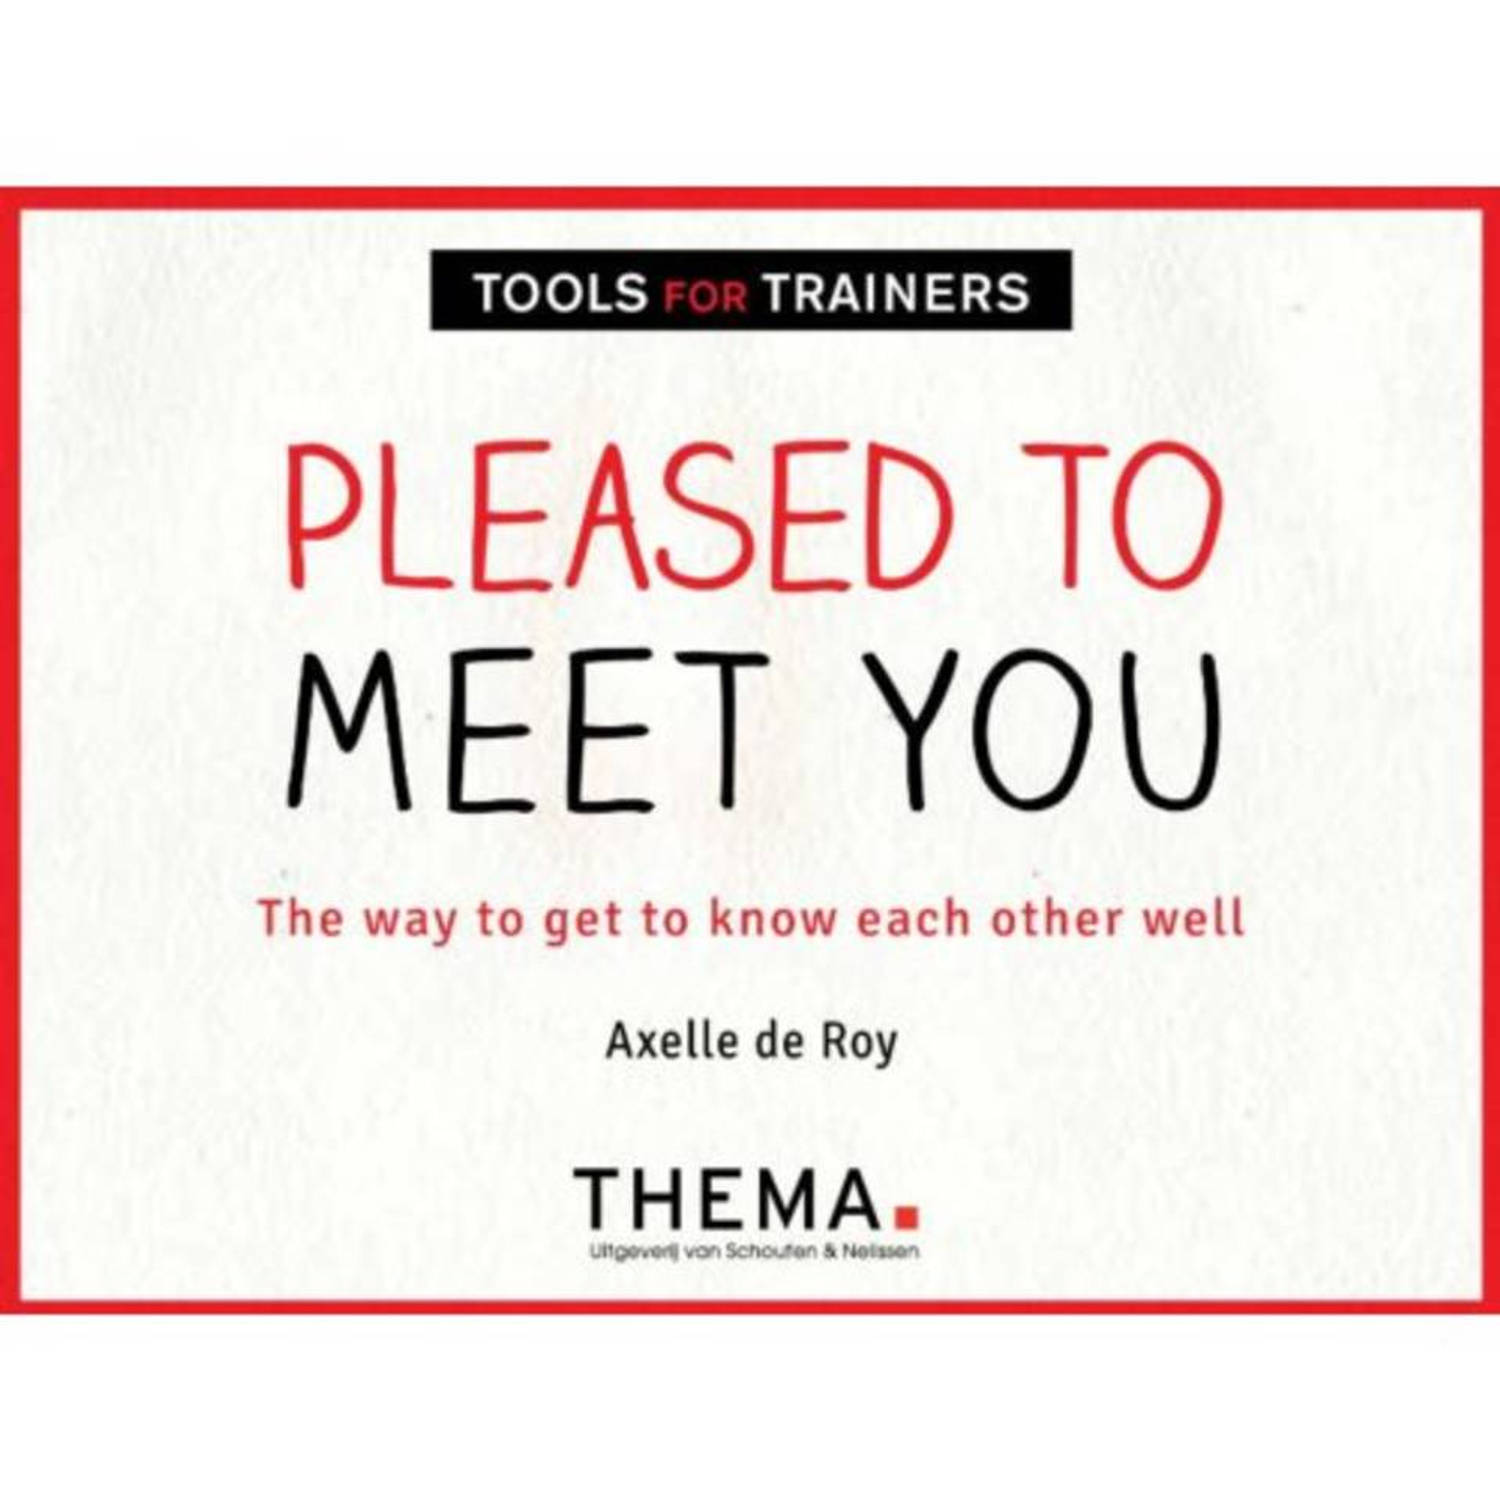 Pleased to meet you - Tools voor trainers